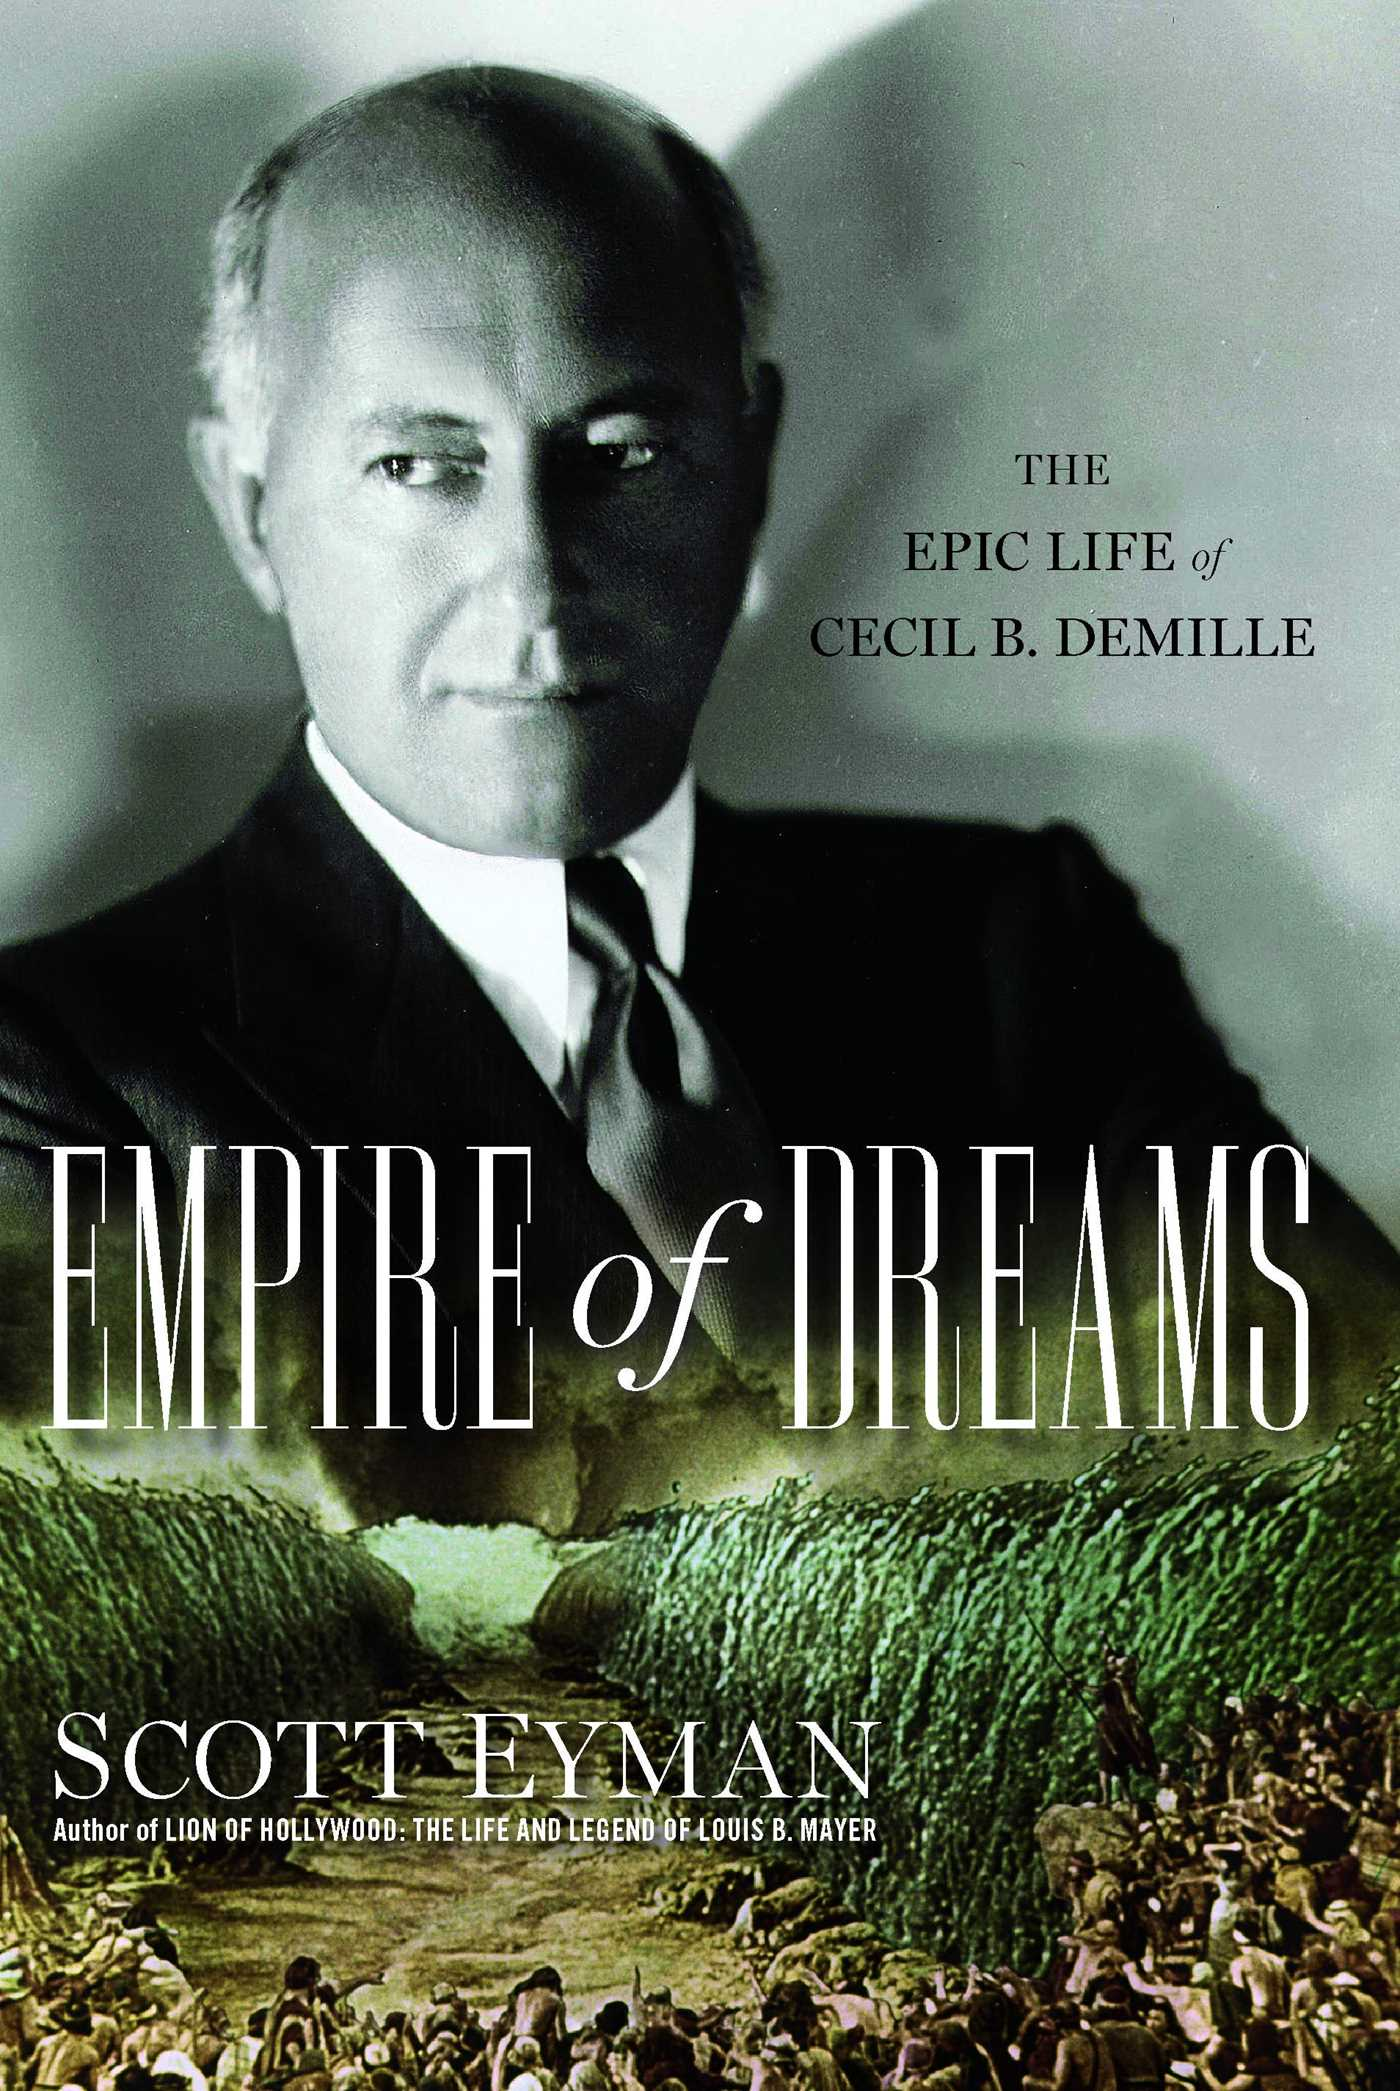 Empire-of-dreams-9781439180419_hr